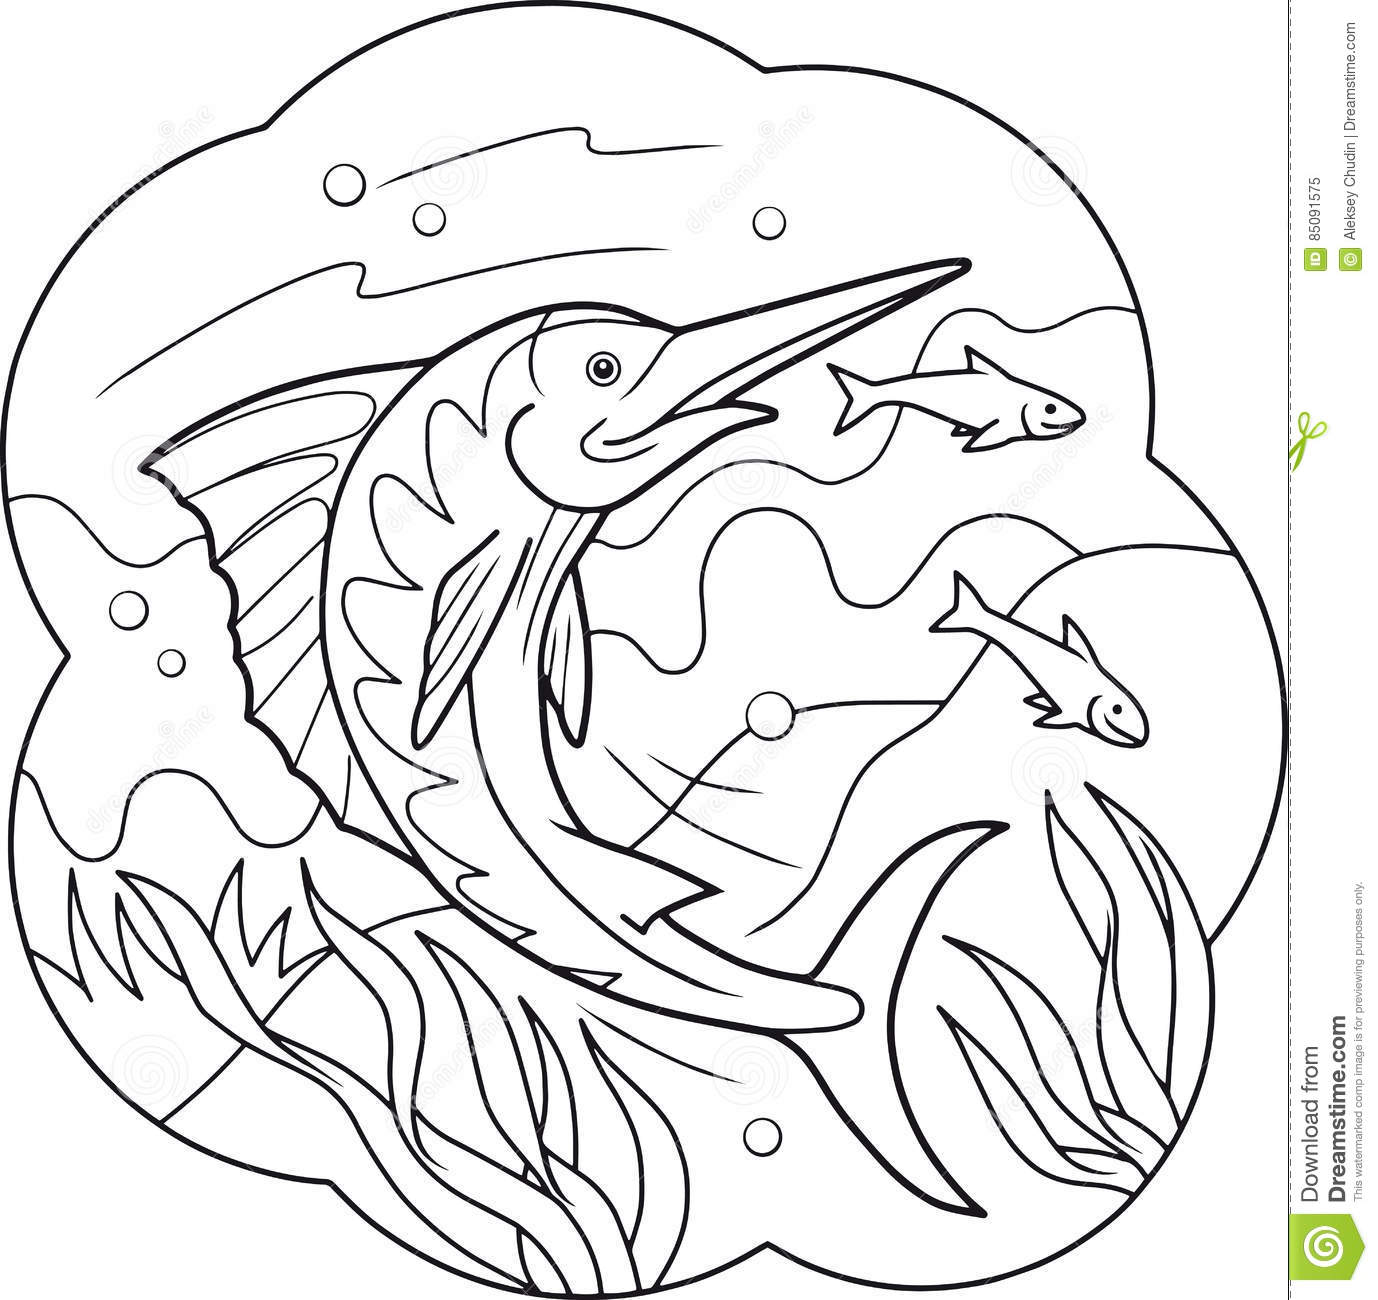 Swordfish Coloring Pages - Learny Kids